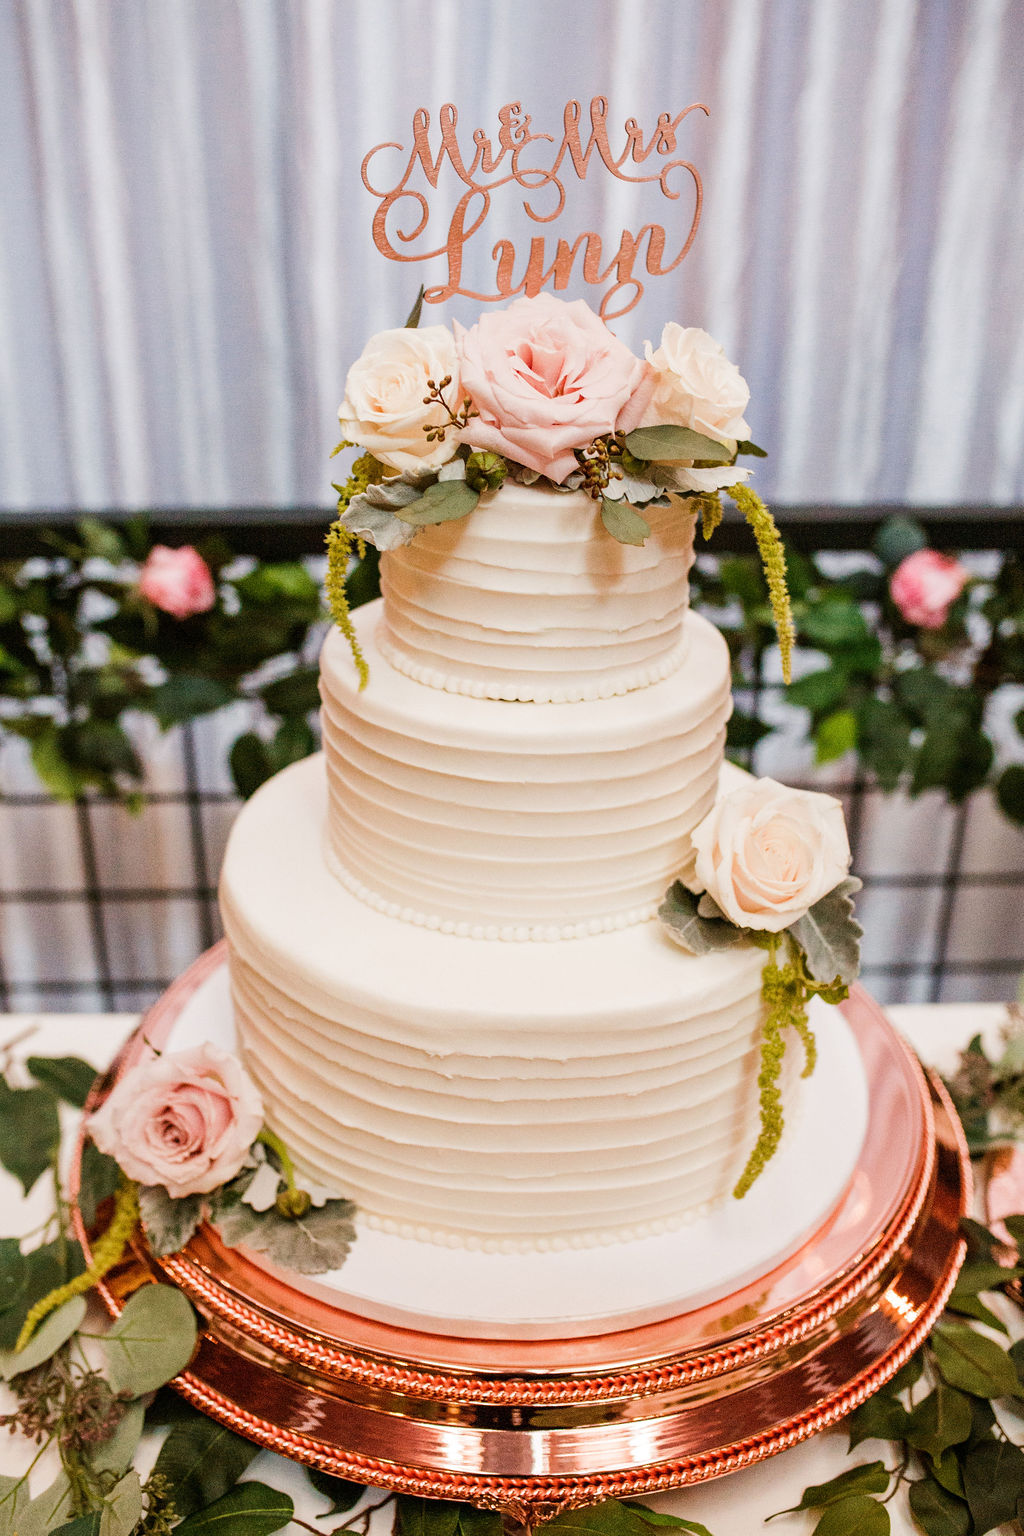 Ivory wedding cake with pink flowers: Wedding at The Mill captured by John Myers Photography featured on Nashville Bride Guide